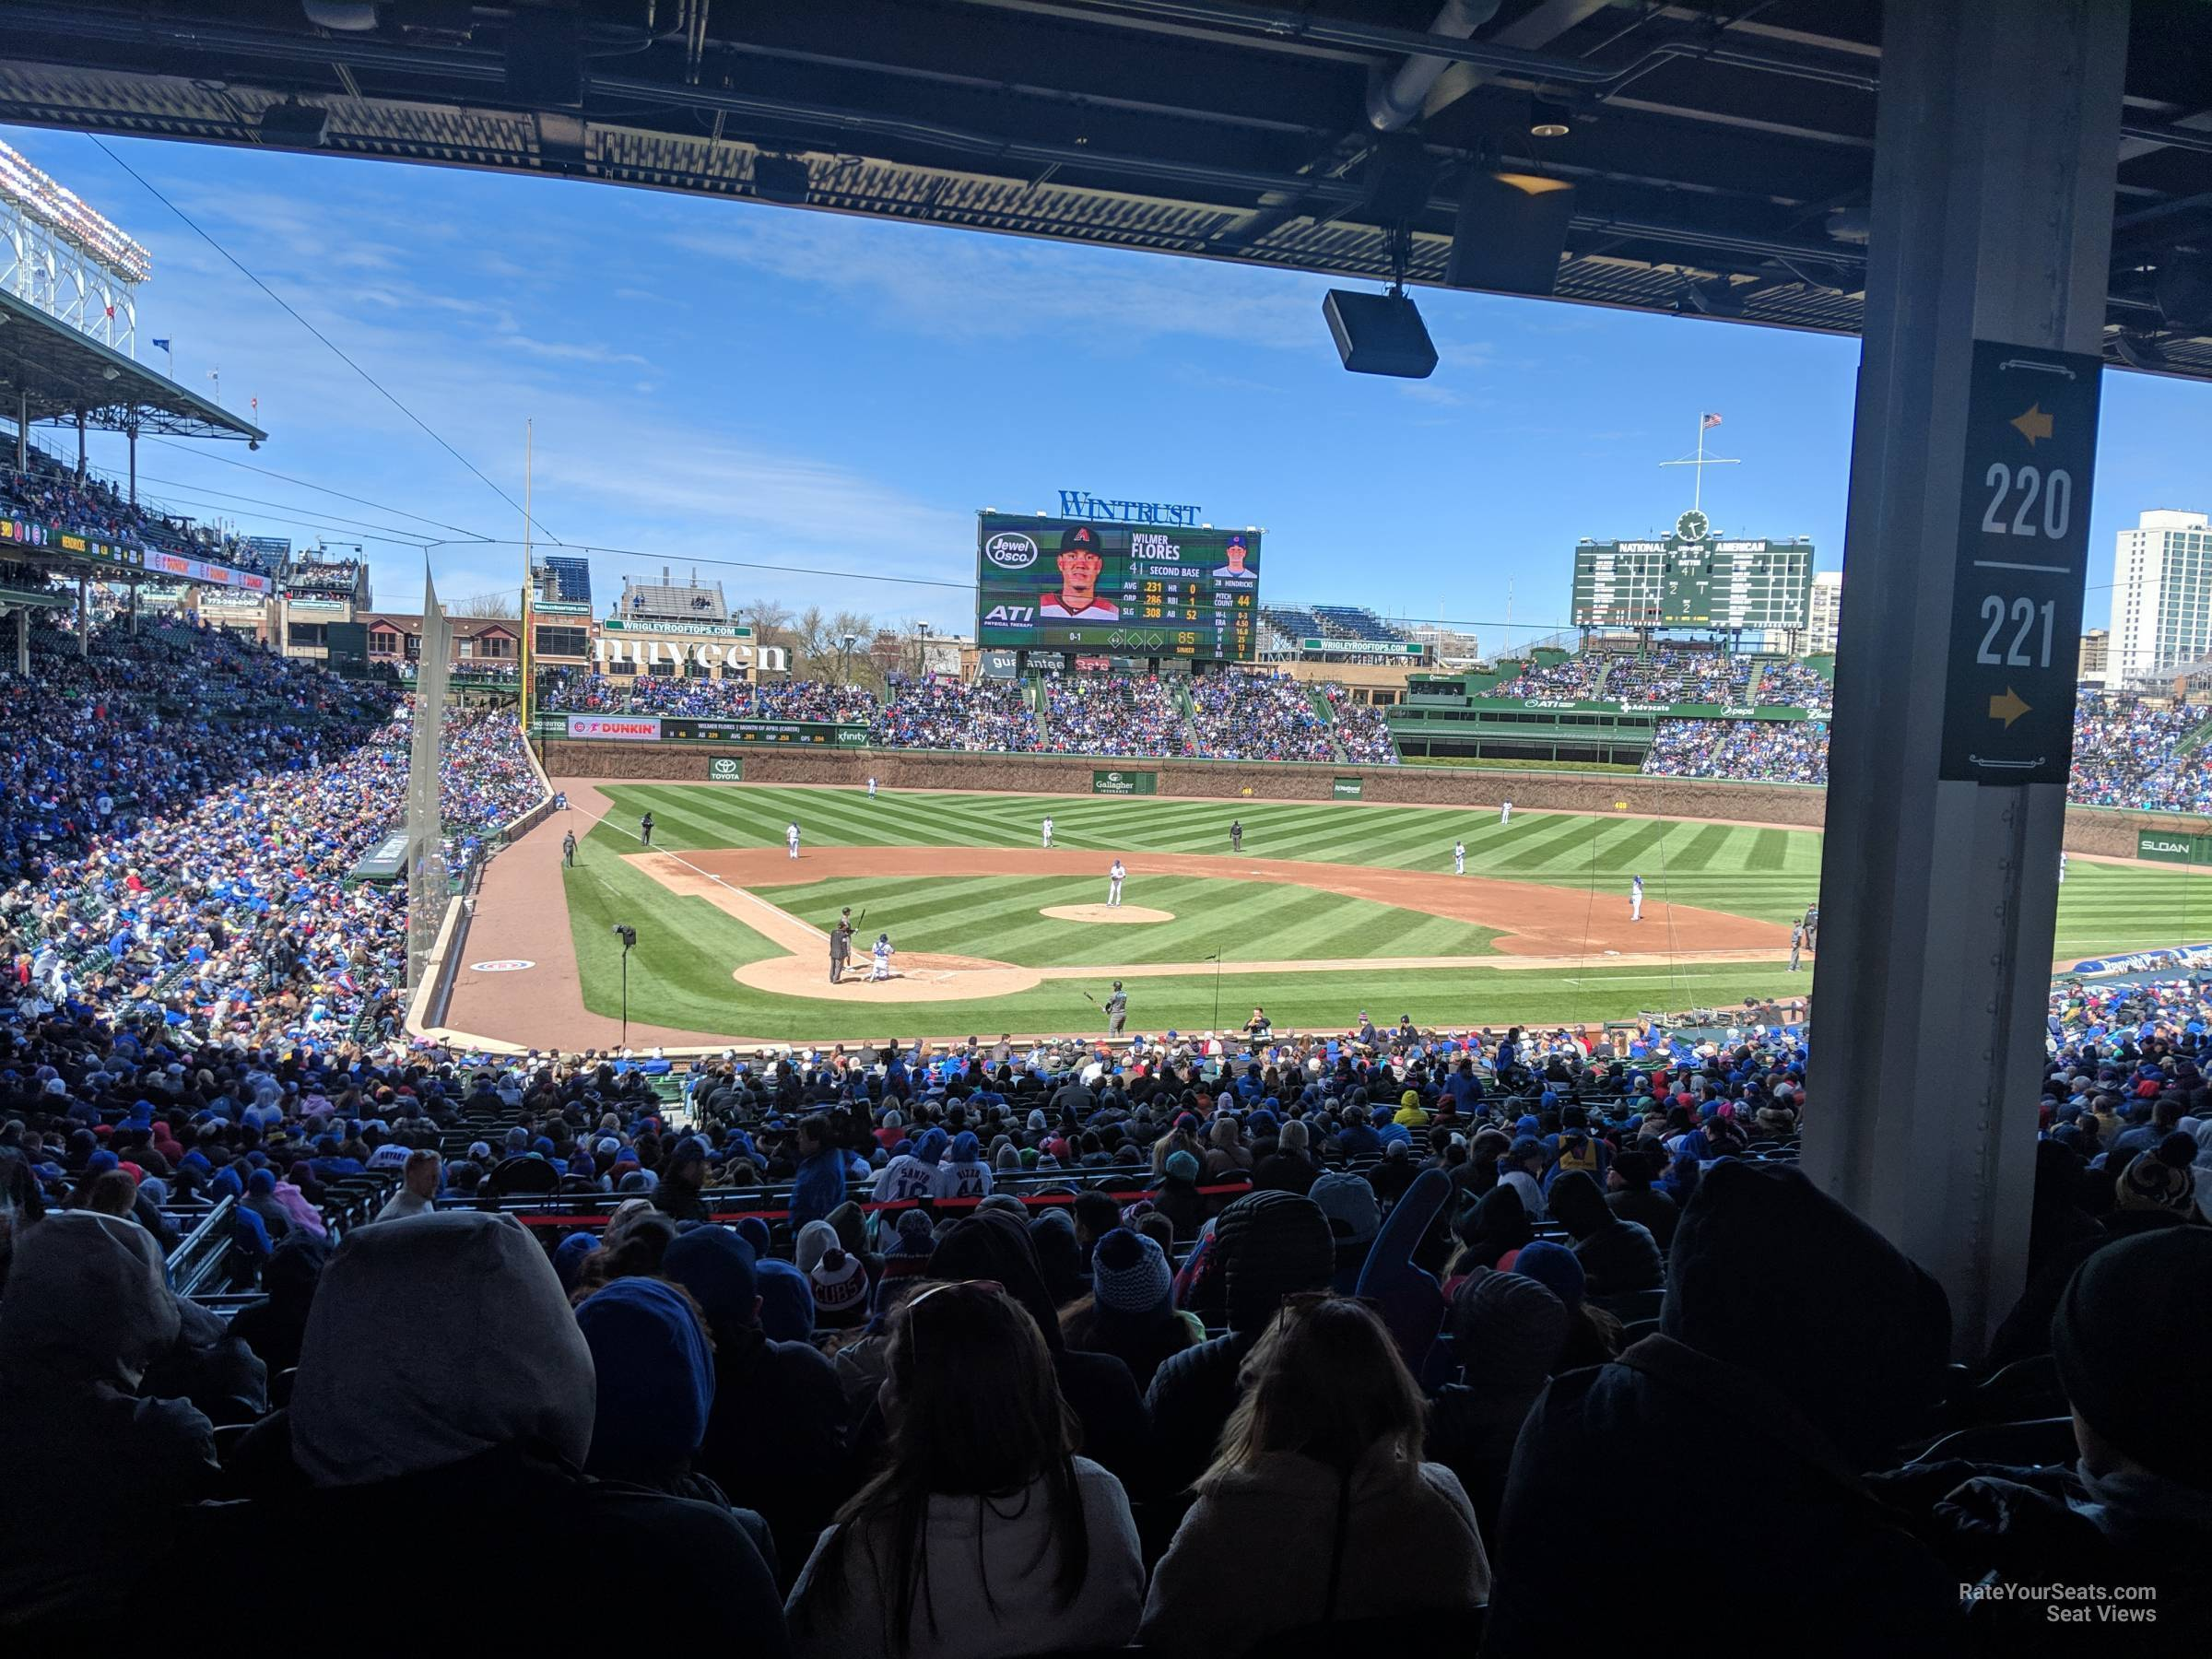 Seat View for Wrigley Field Section 220, Row 12